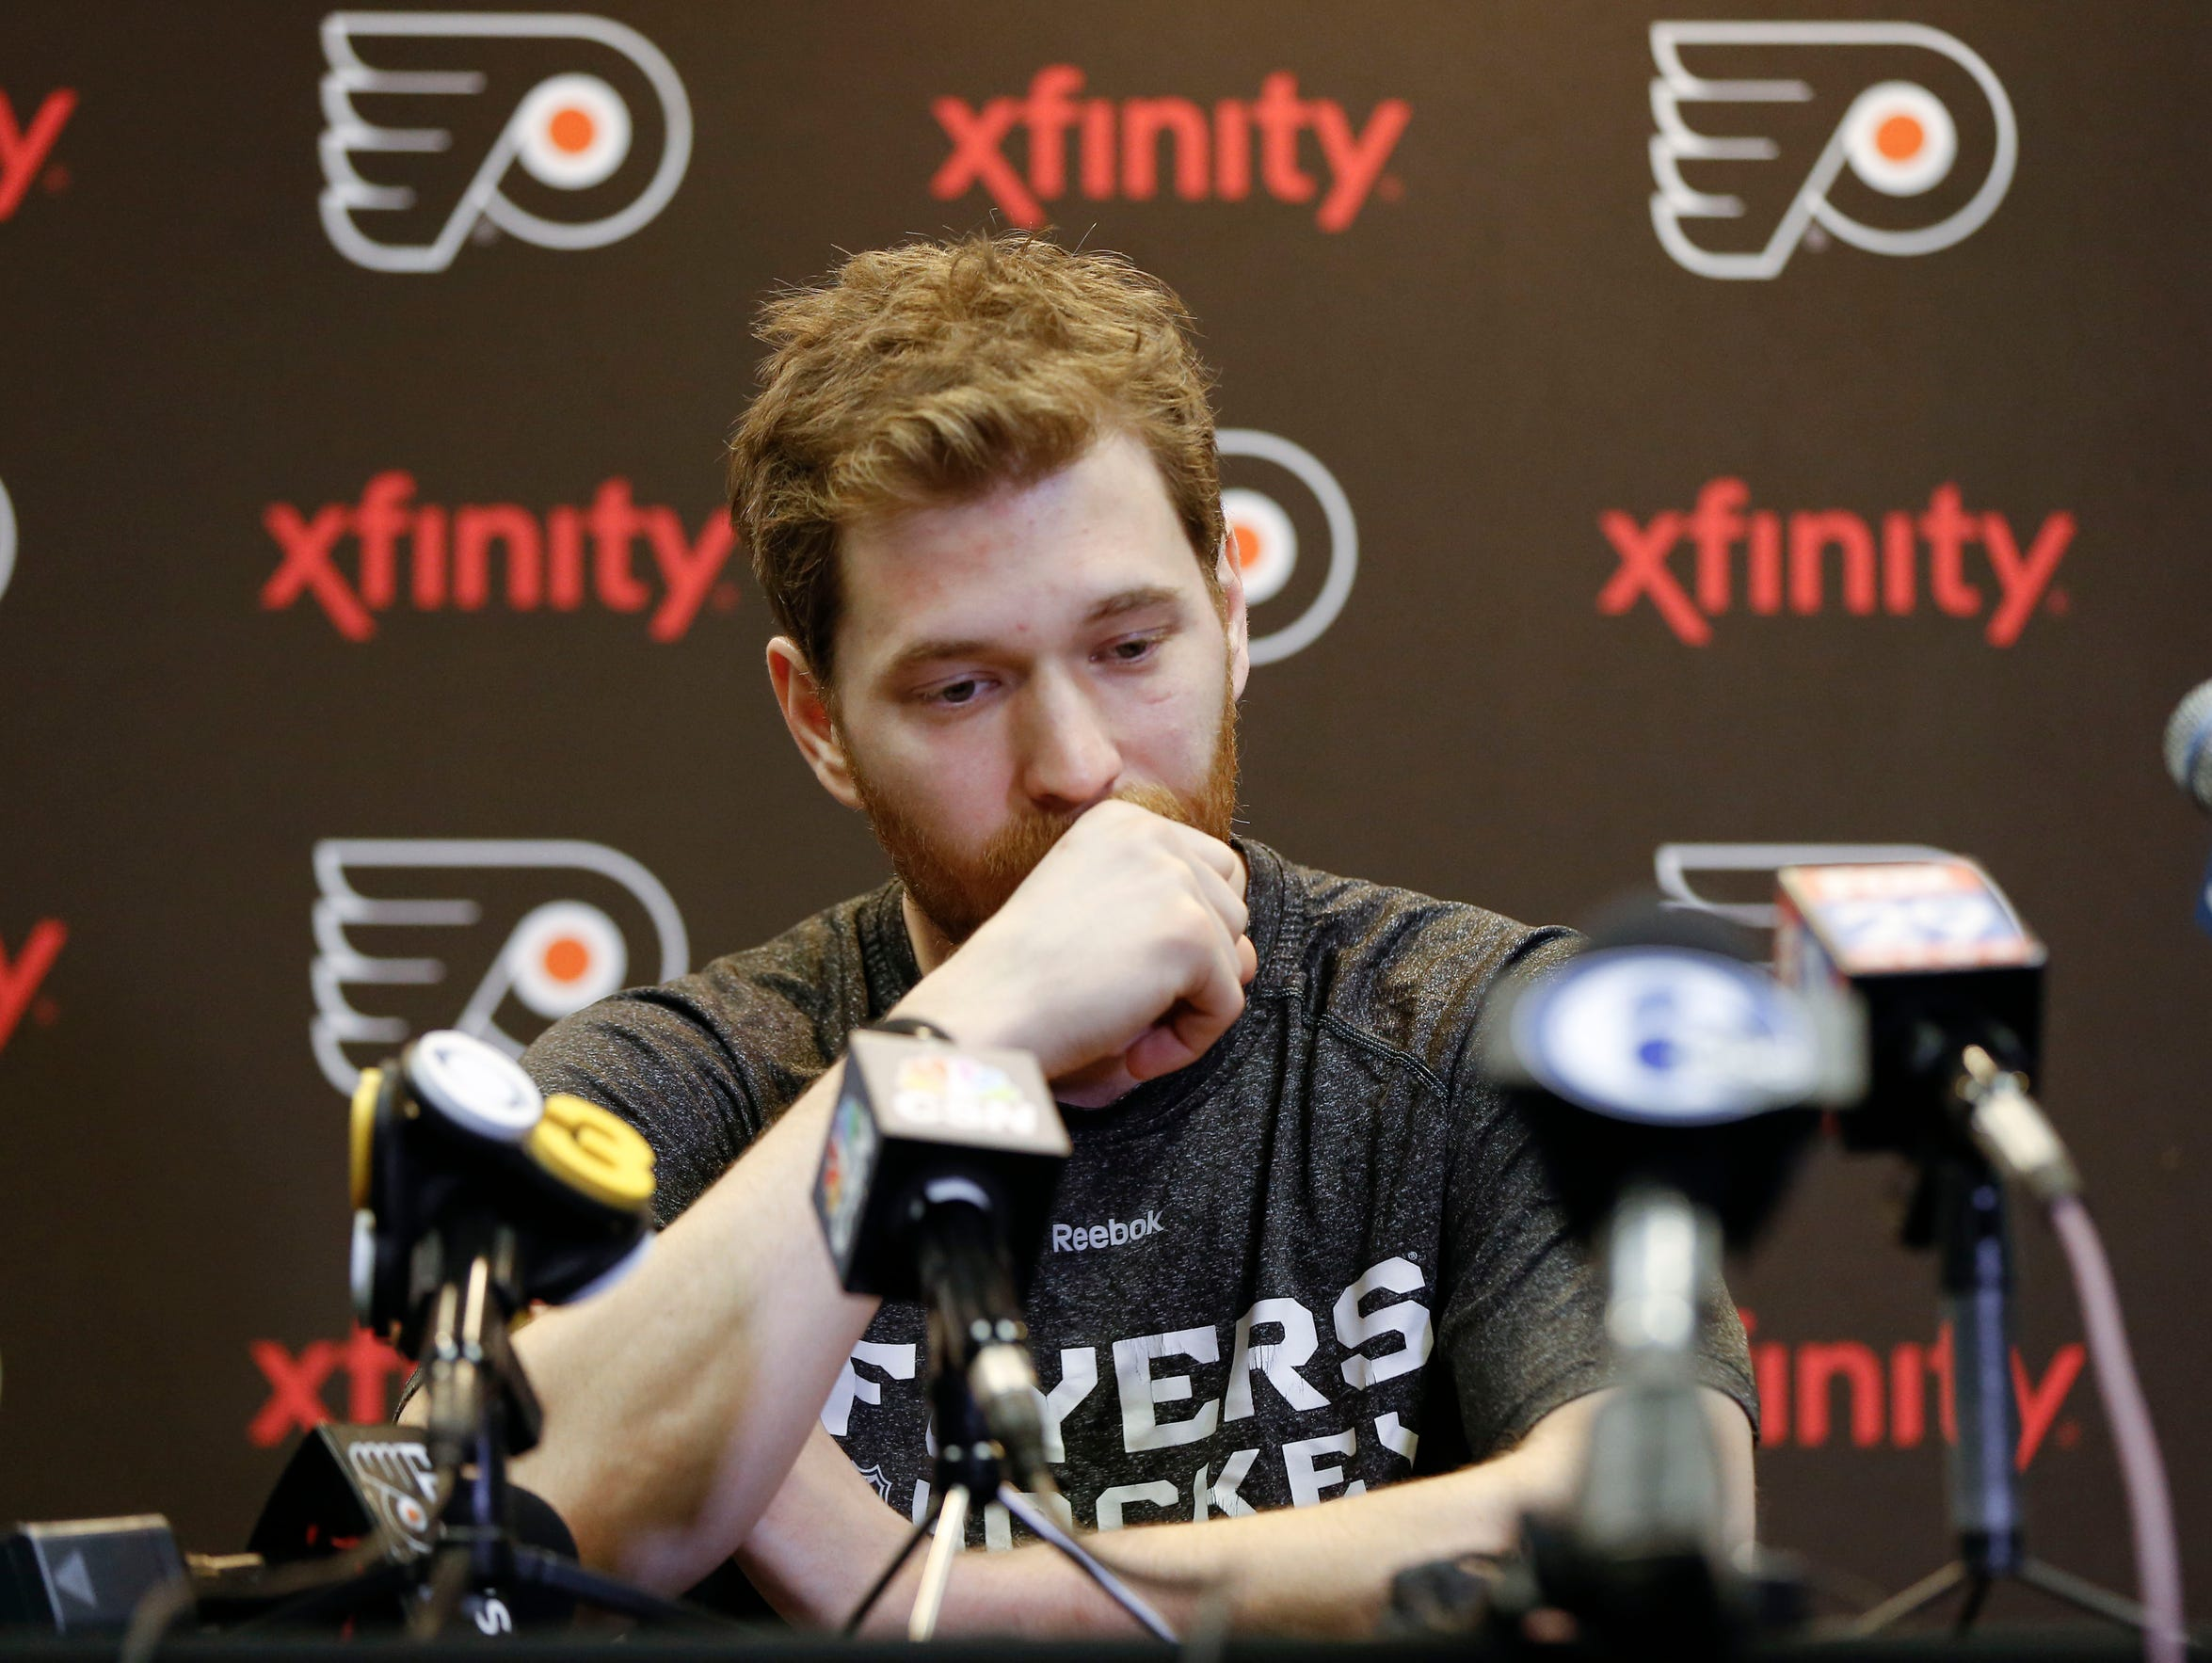 After last season, Claude Giroux opened up briefly about not being able to play the way he wanted to because of surgeries in the prior offseason.